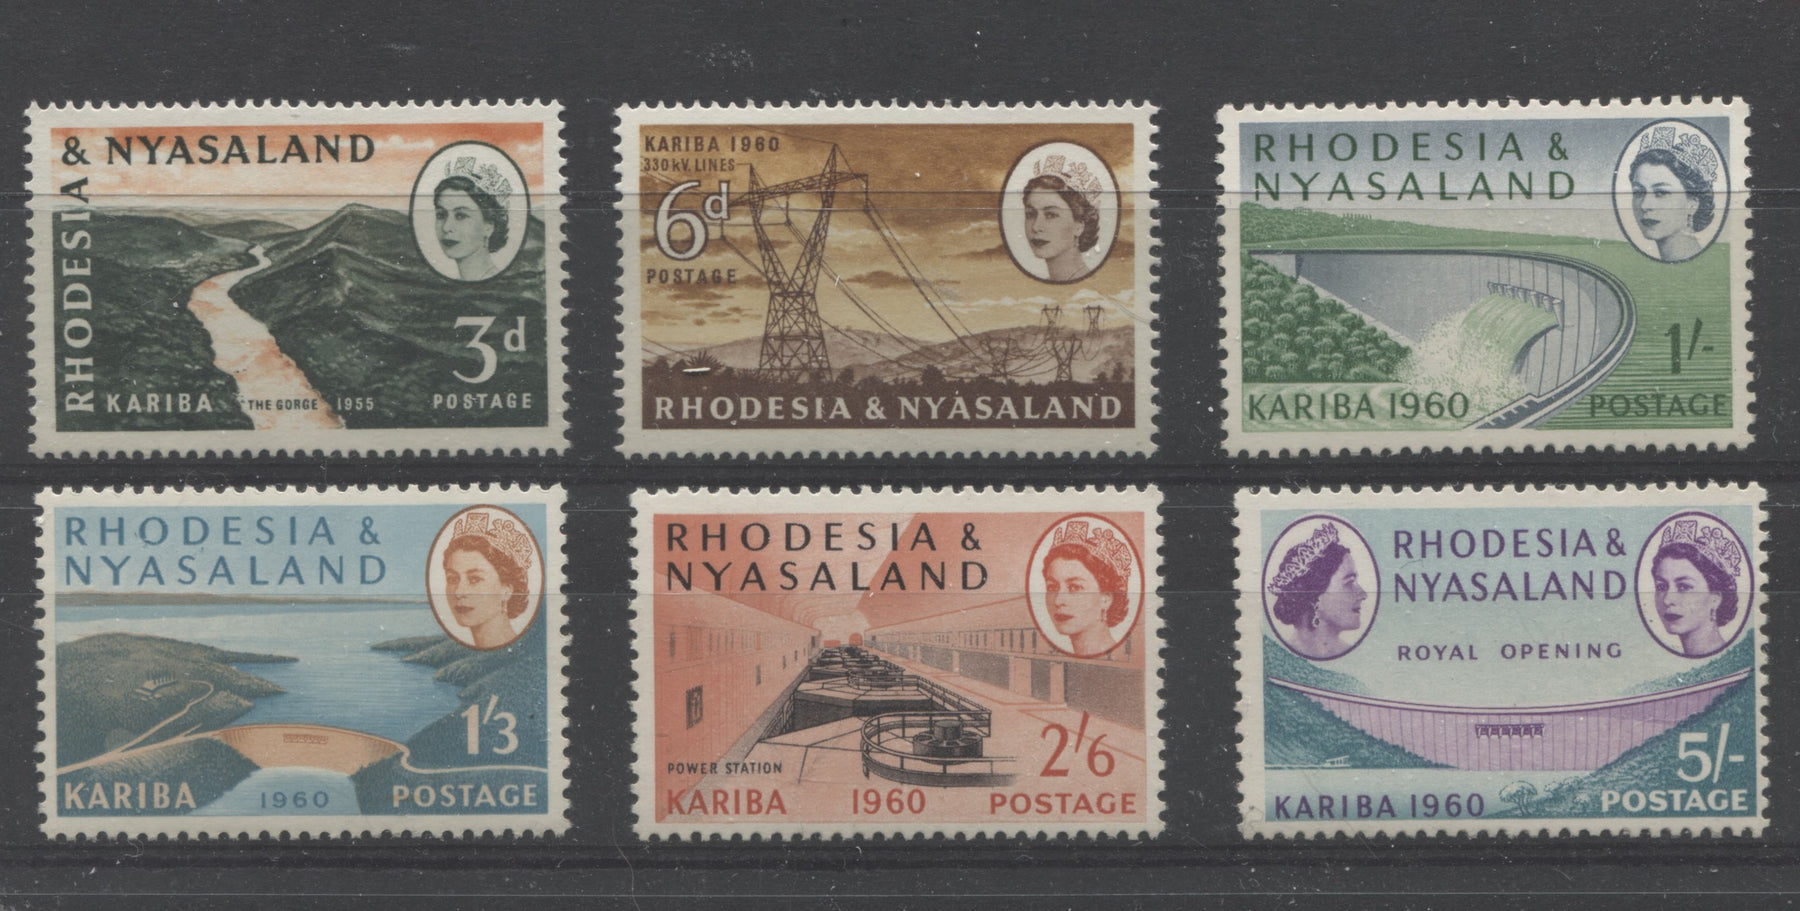 Rhodesia and Nyasaland SG#32-37 1960 Opening of the Kariba Hydroelectric Scheme - Complete VF NH Mint Set Brixton Chrome